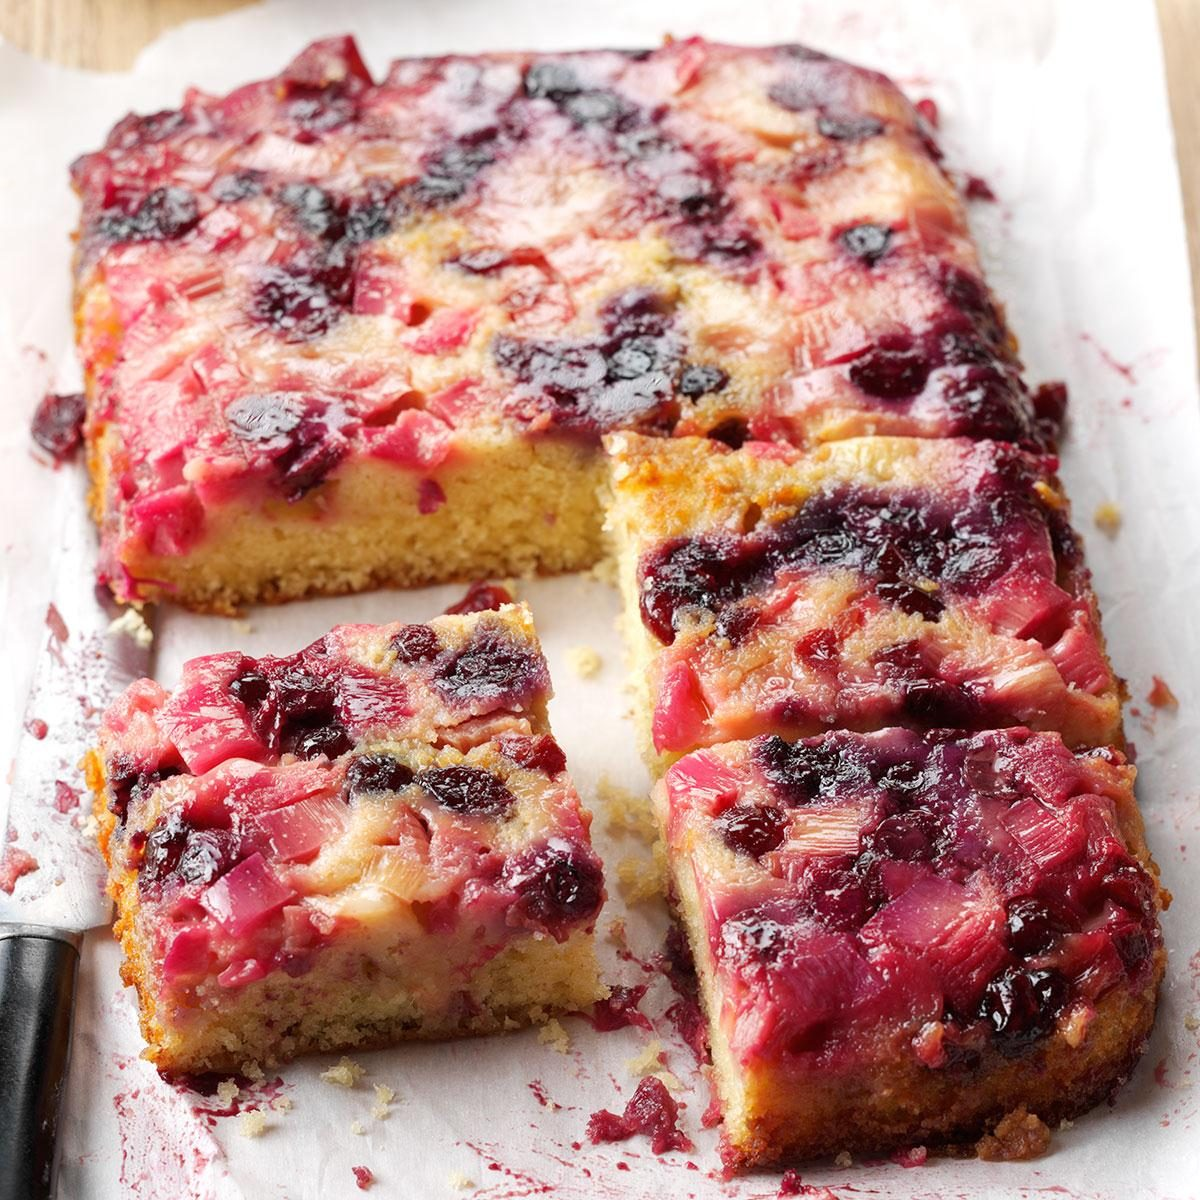 Rhubarb: Rhubarb Berry Upside-Down Cake